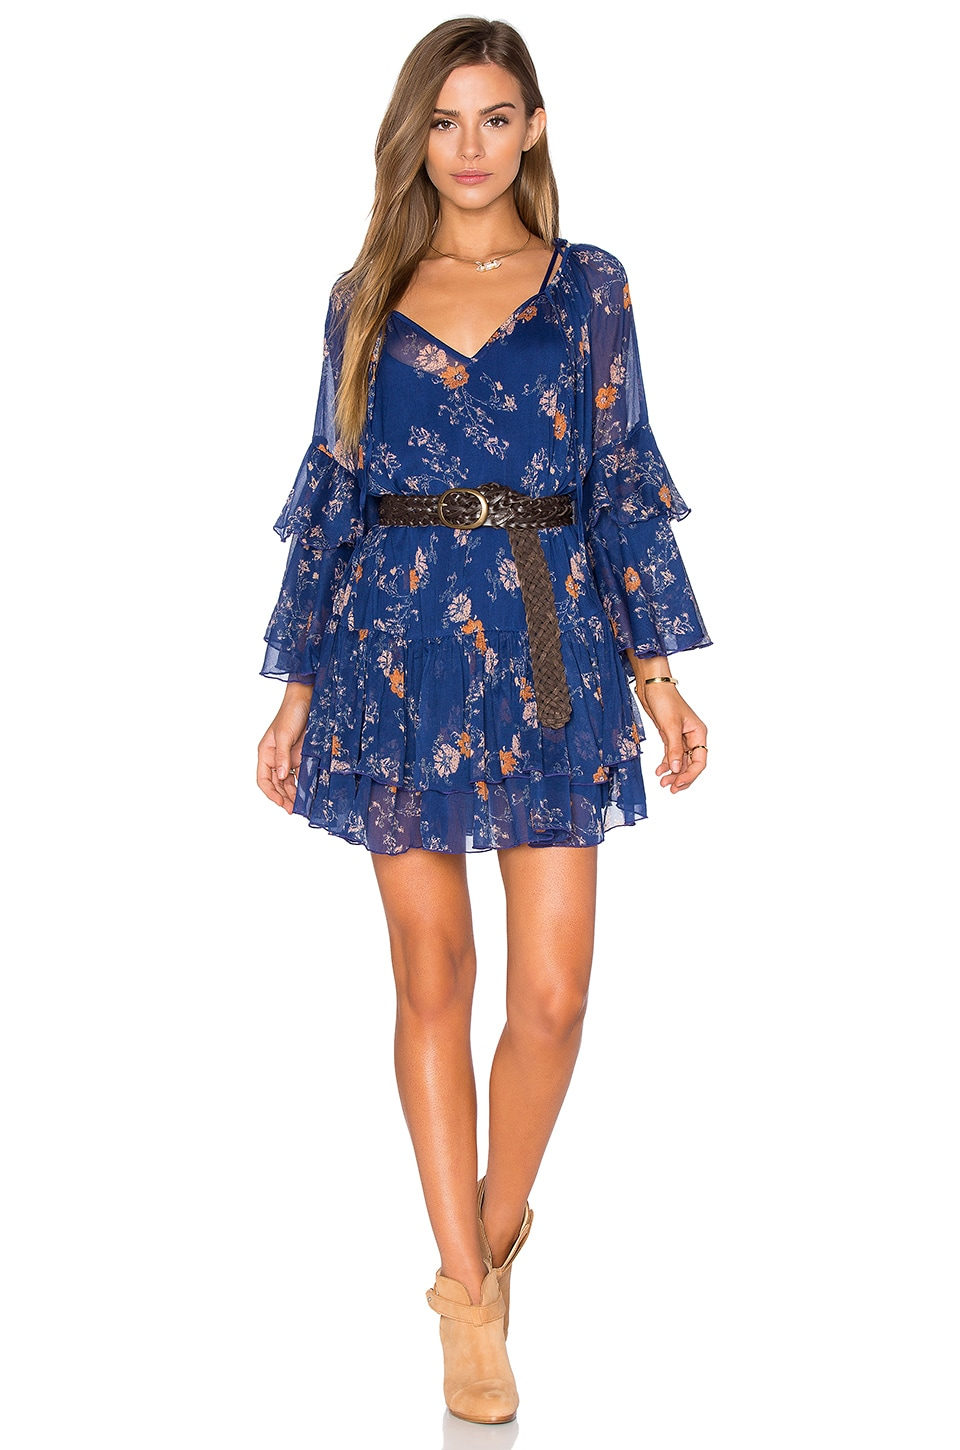 Free People Sunsetter Printed Dress in Blue Combo | REVOLVE